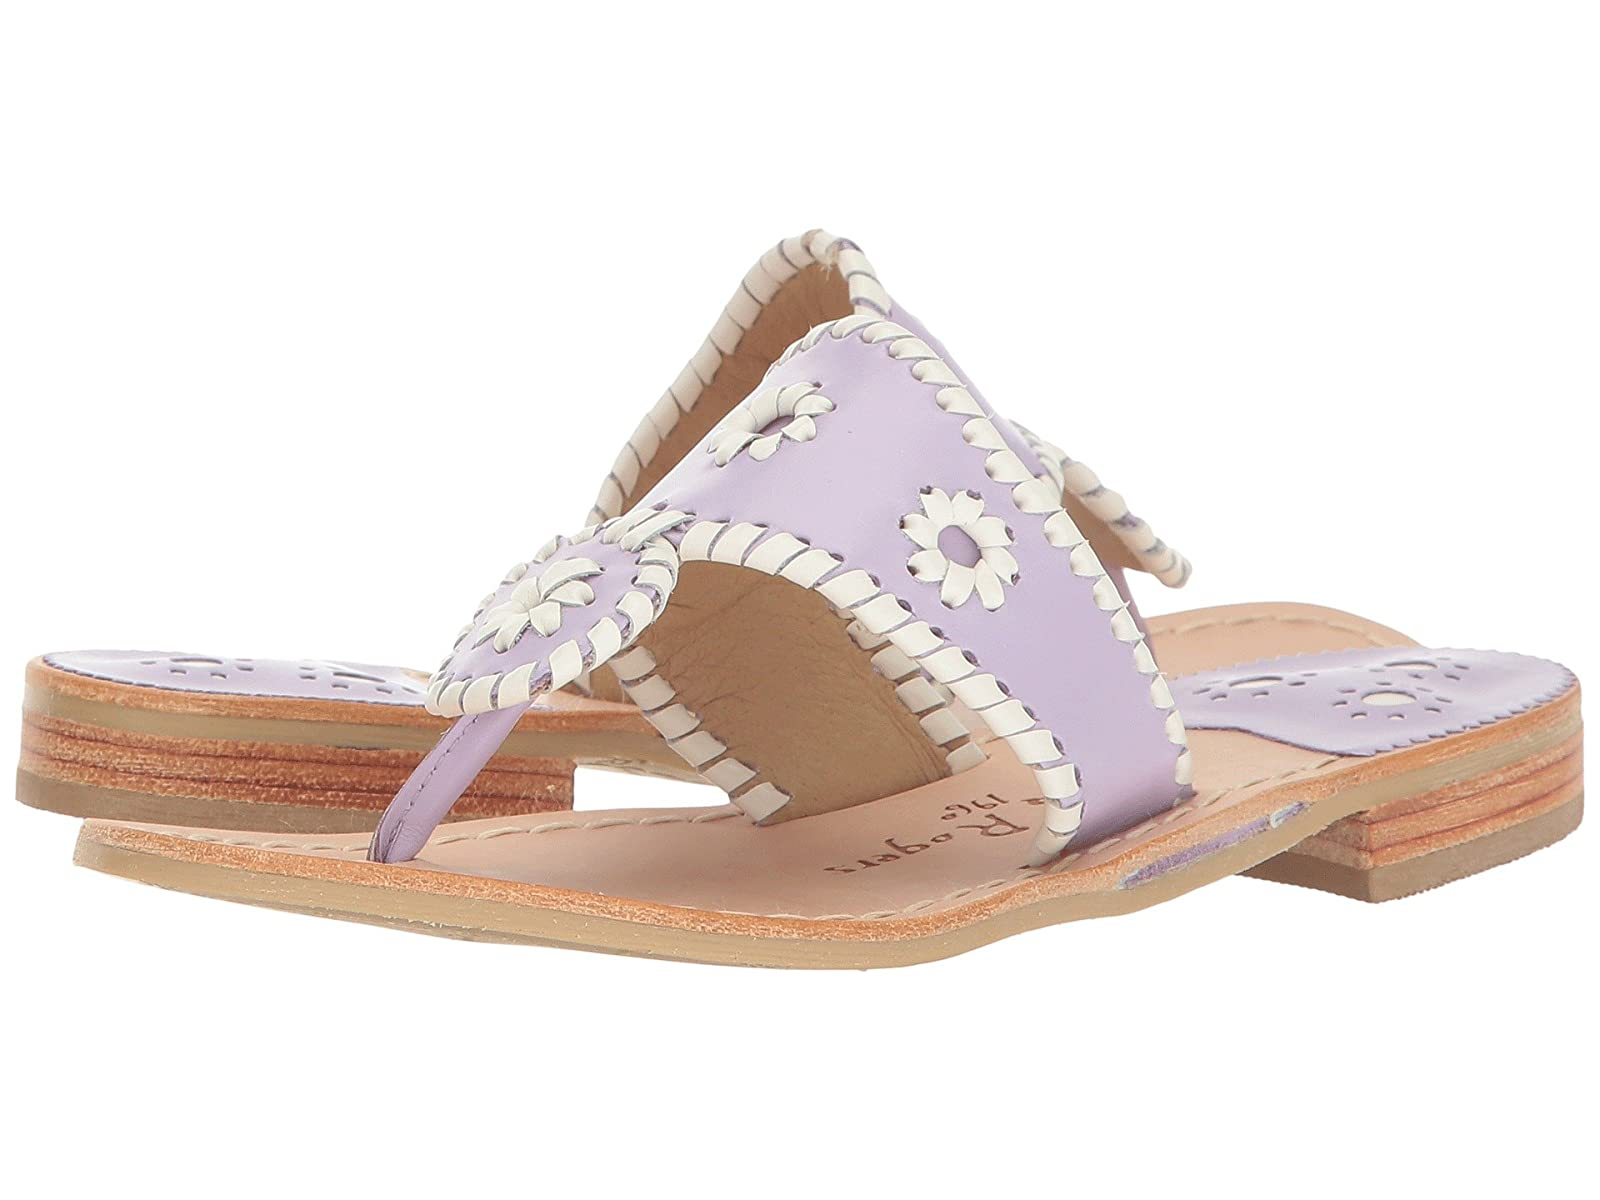 Jack Rogers Jacks Pretty In PastelCheap and distinctive eye-catching shoes